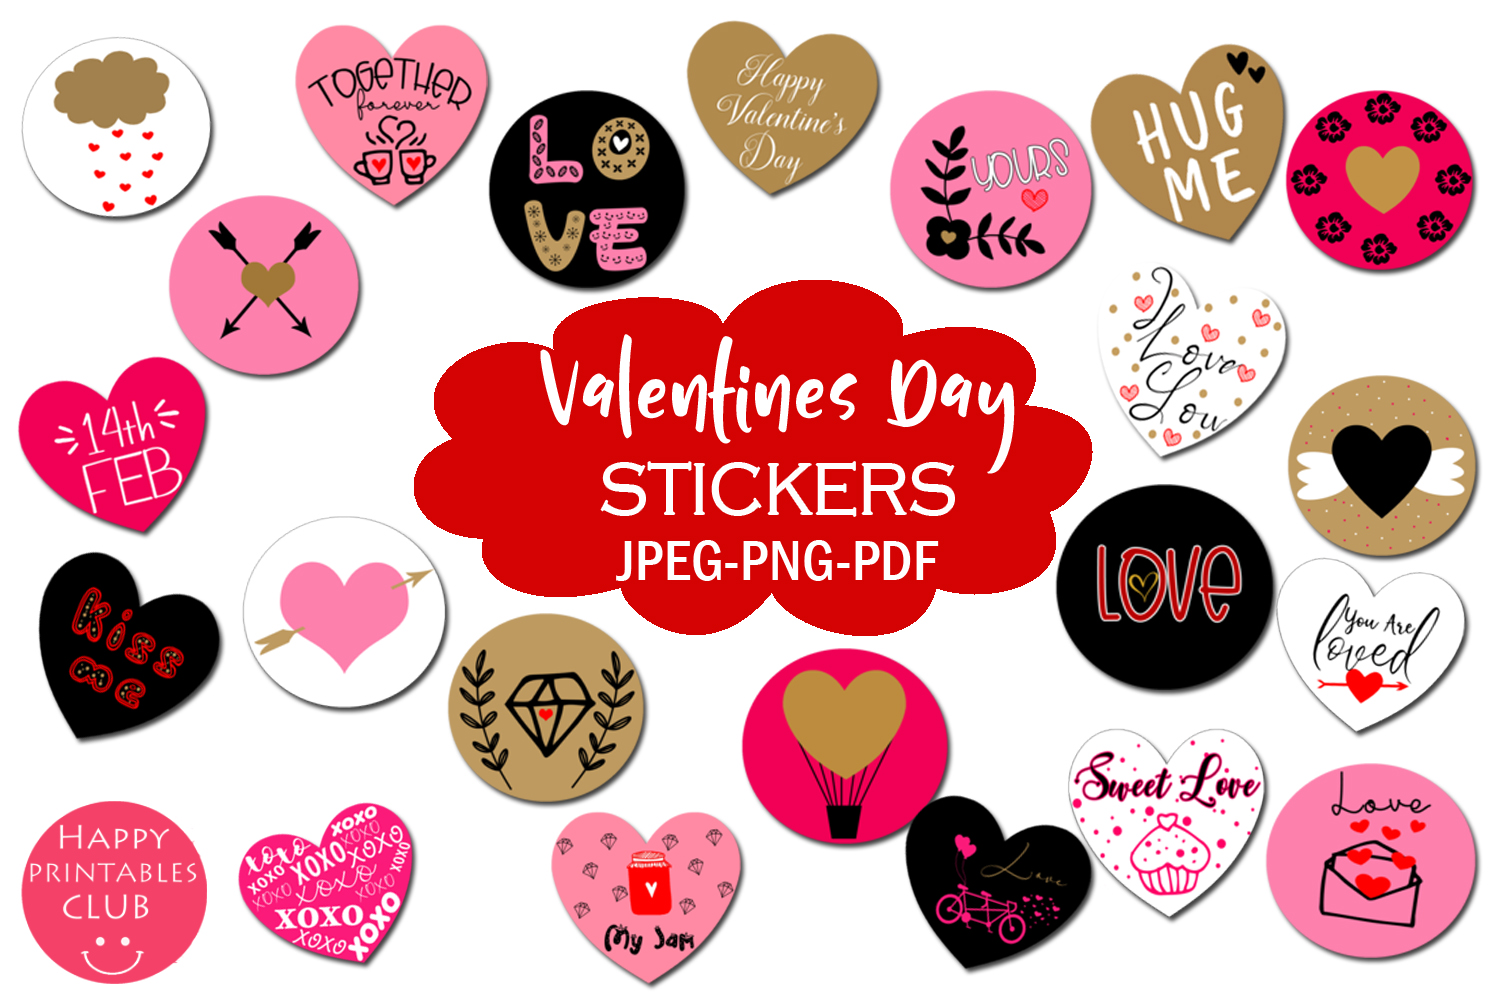 Download Free Cute Valentines Day Stickers Graphic By Happy Printables Club for Cricut Explore, Silhouette and other cutting machines.